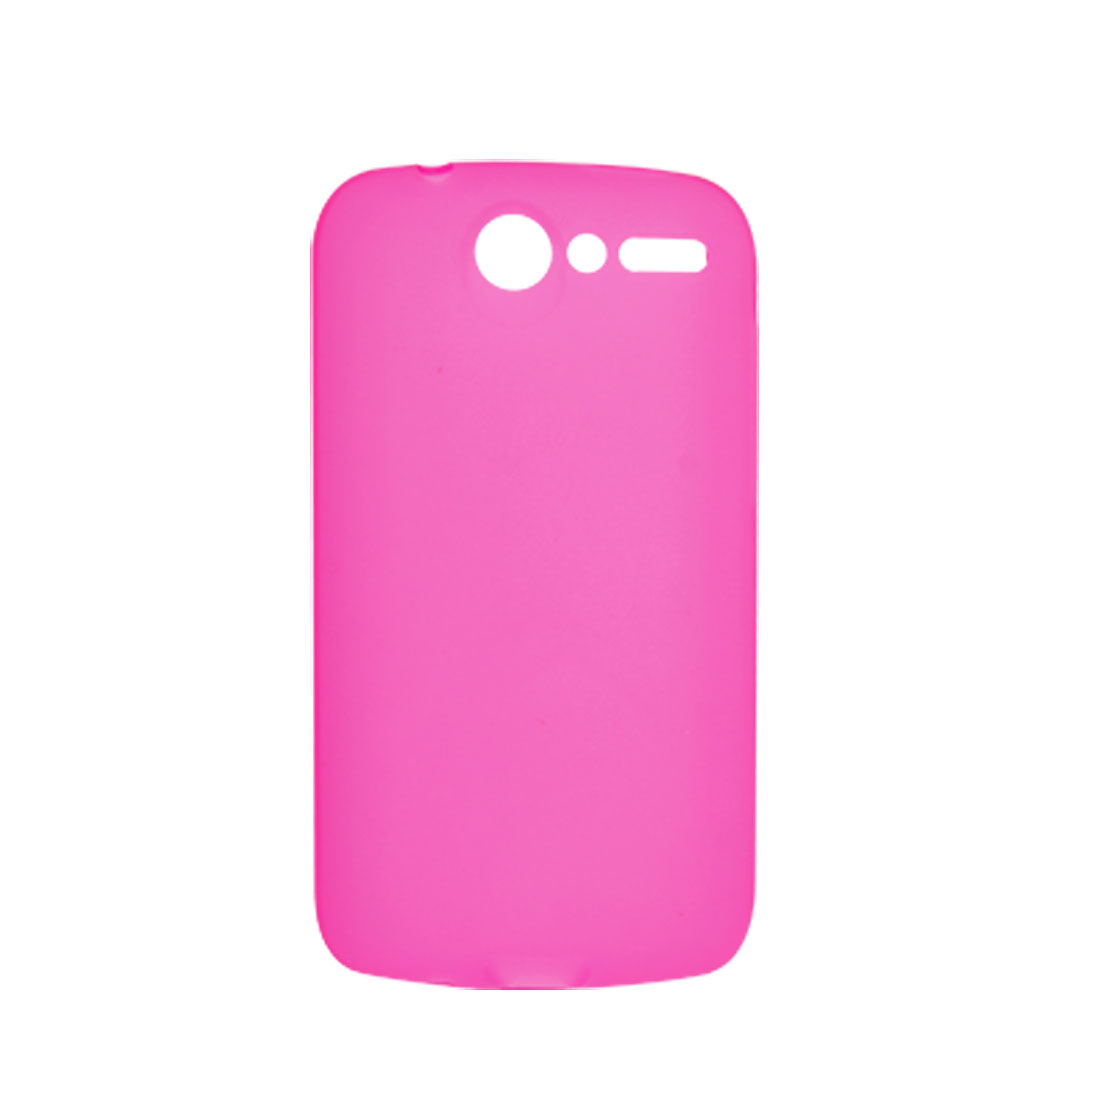 Clear Fuchsia Soft Plastic Case Shell for HTC Desire G7